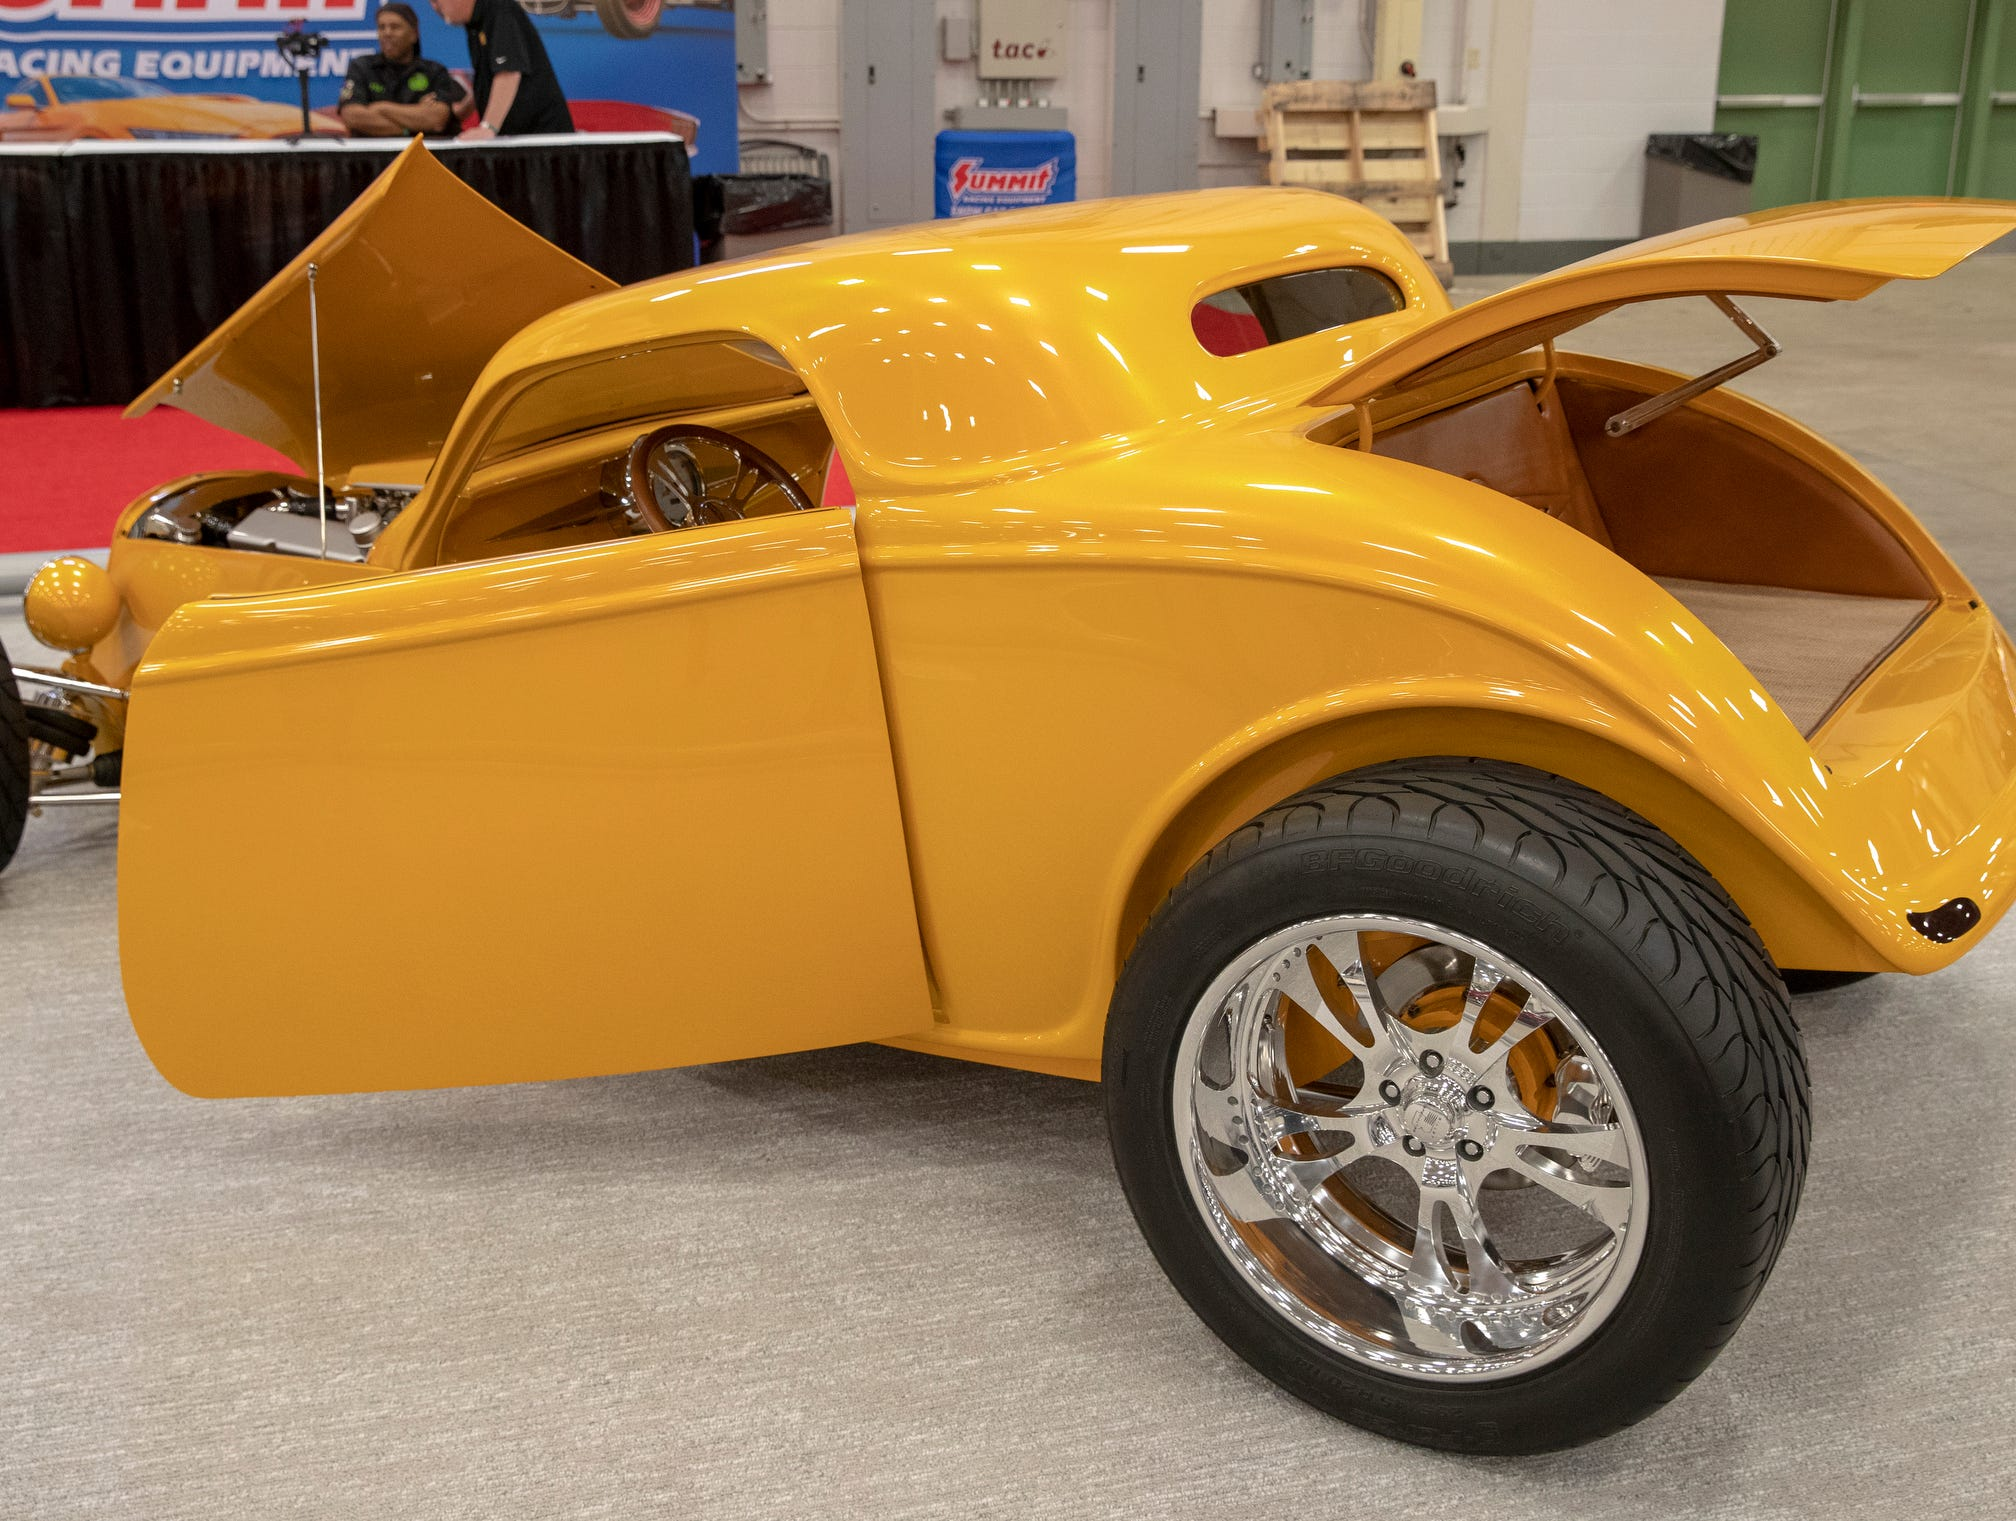 A 1933 Speedstar, at World of Wheels at the Indiana State Fairgrounds, Indianapolis, Friday, Feb. 8, 2019. The event runs through the weekend and features four big rooms of stock and heavily customized cars.